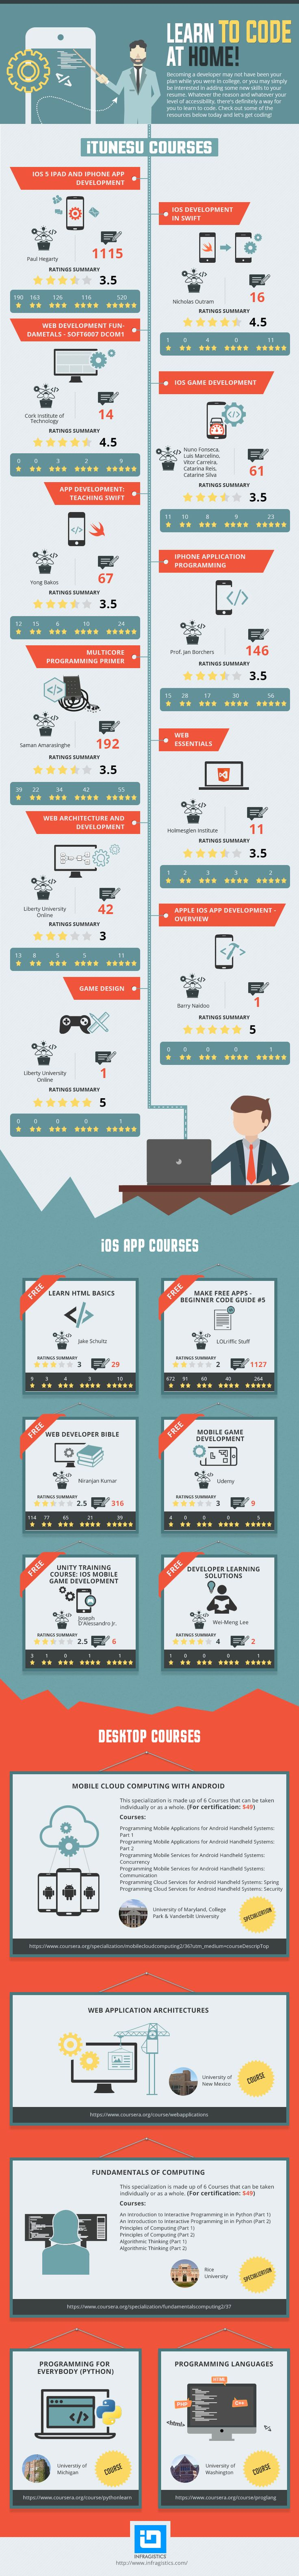 Learn to Code at Home - Infographics Gallery Showcasing the Best of the Best.